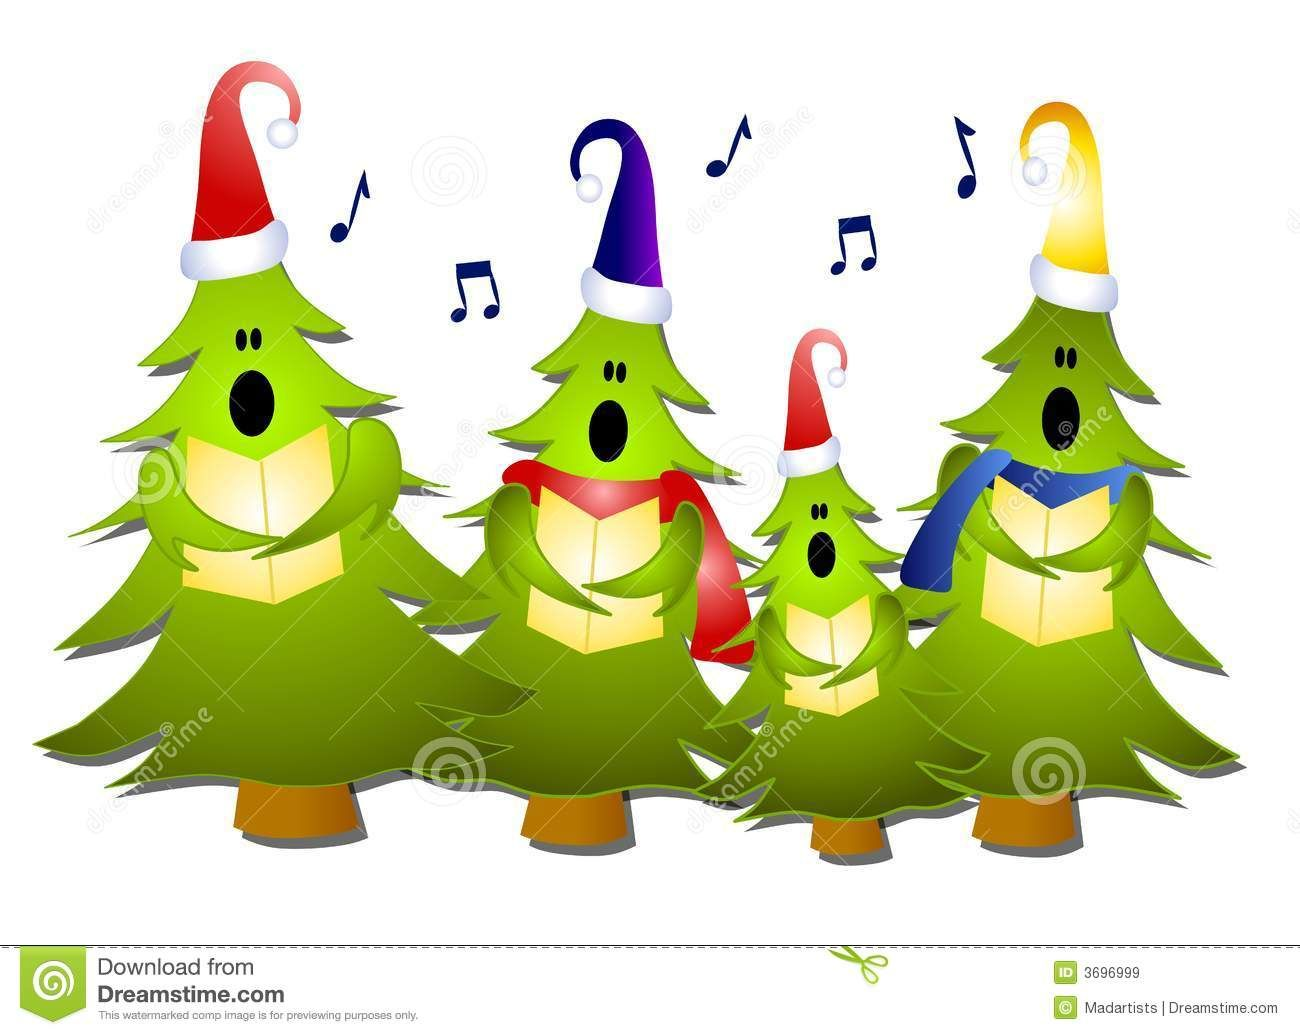 Clip art illustration of. Caroling clipart performance